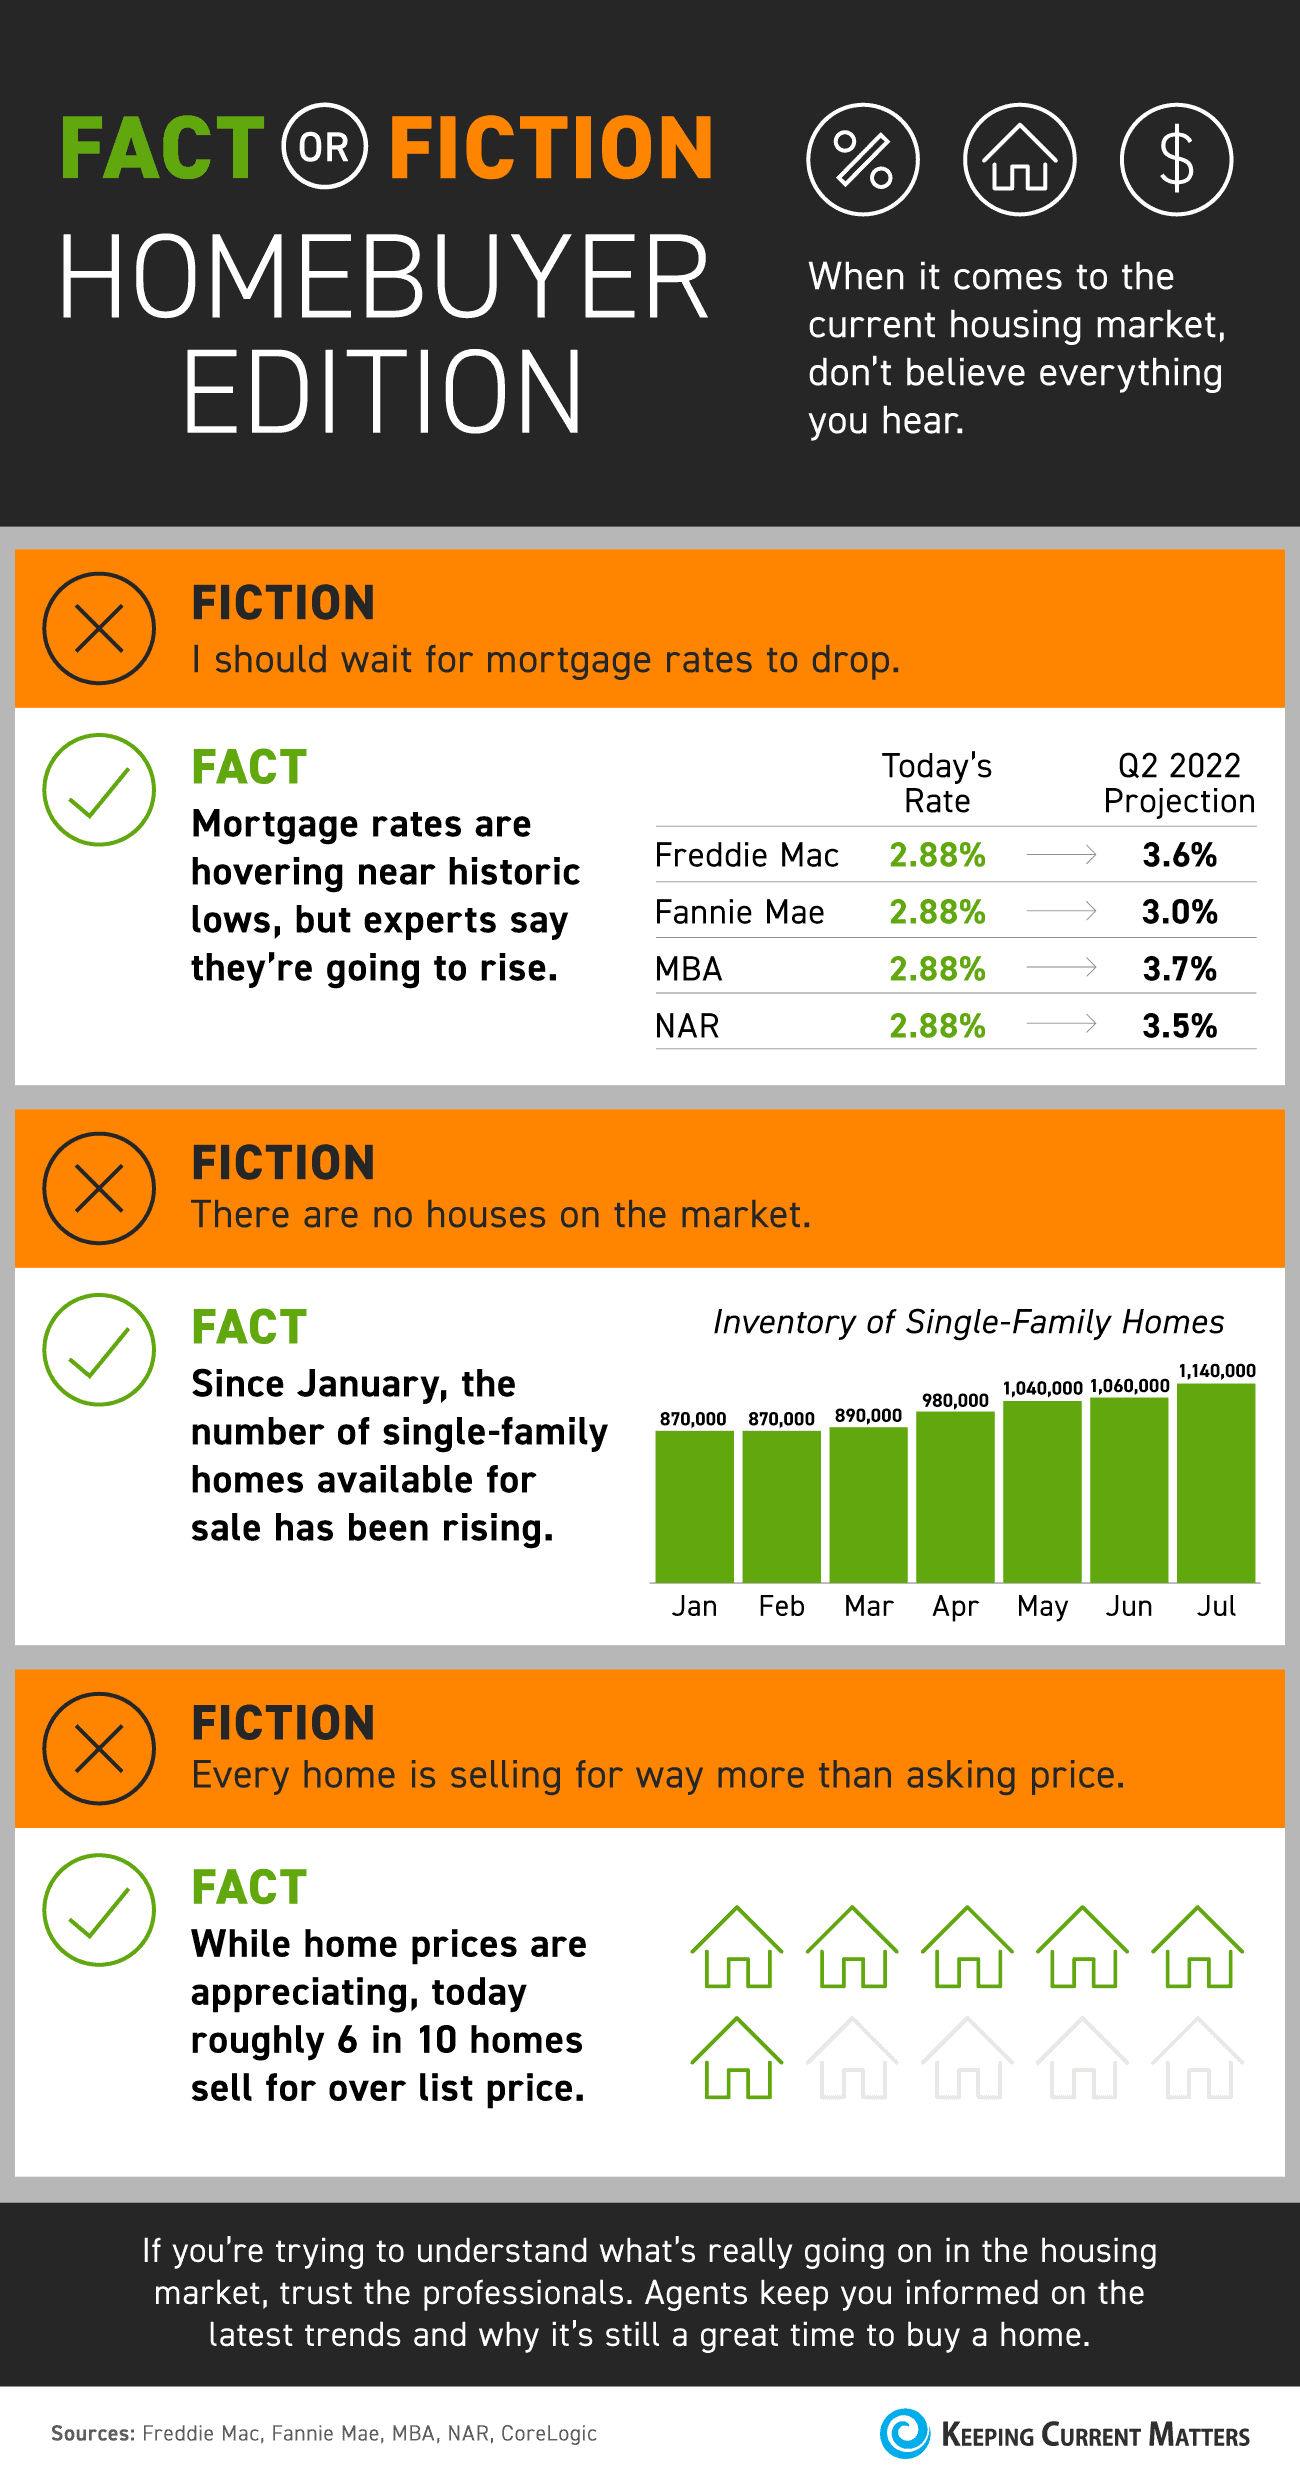 Fact or Fiction: Homebuyer Edition [INFOGRAPHIC] | Keeping Current Matters